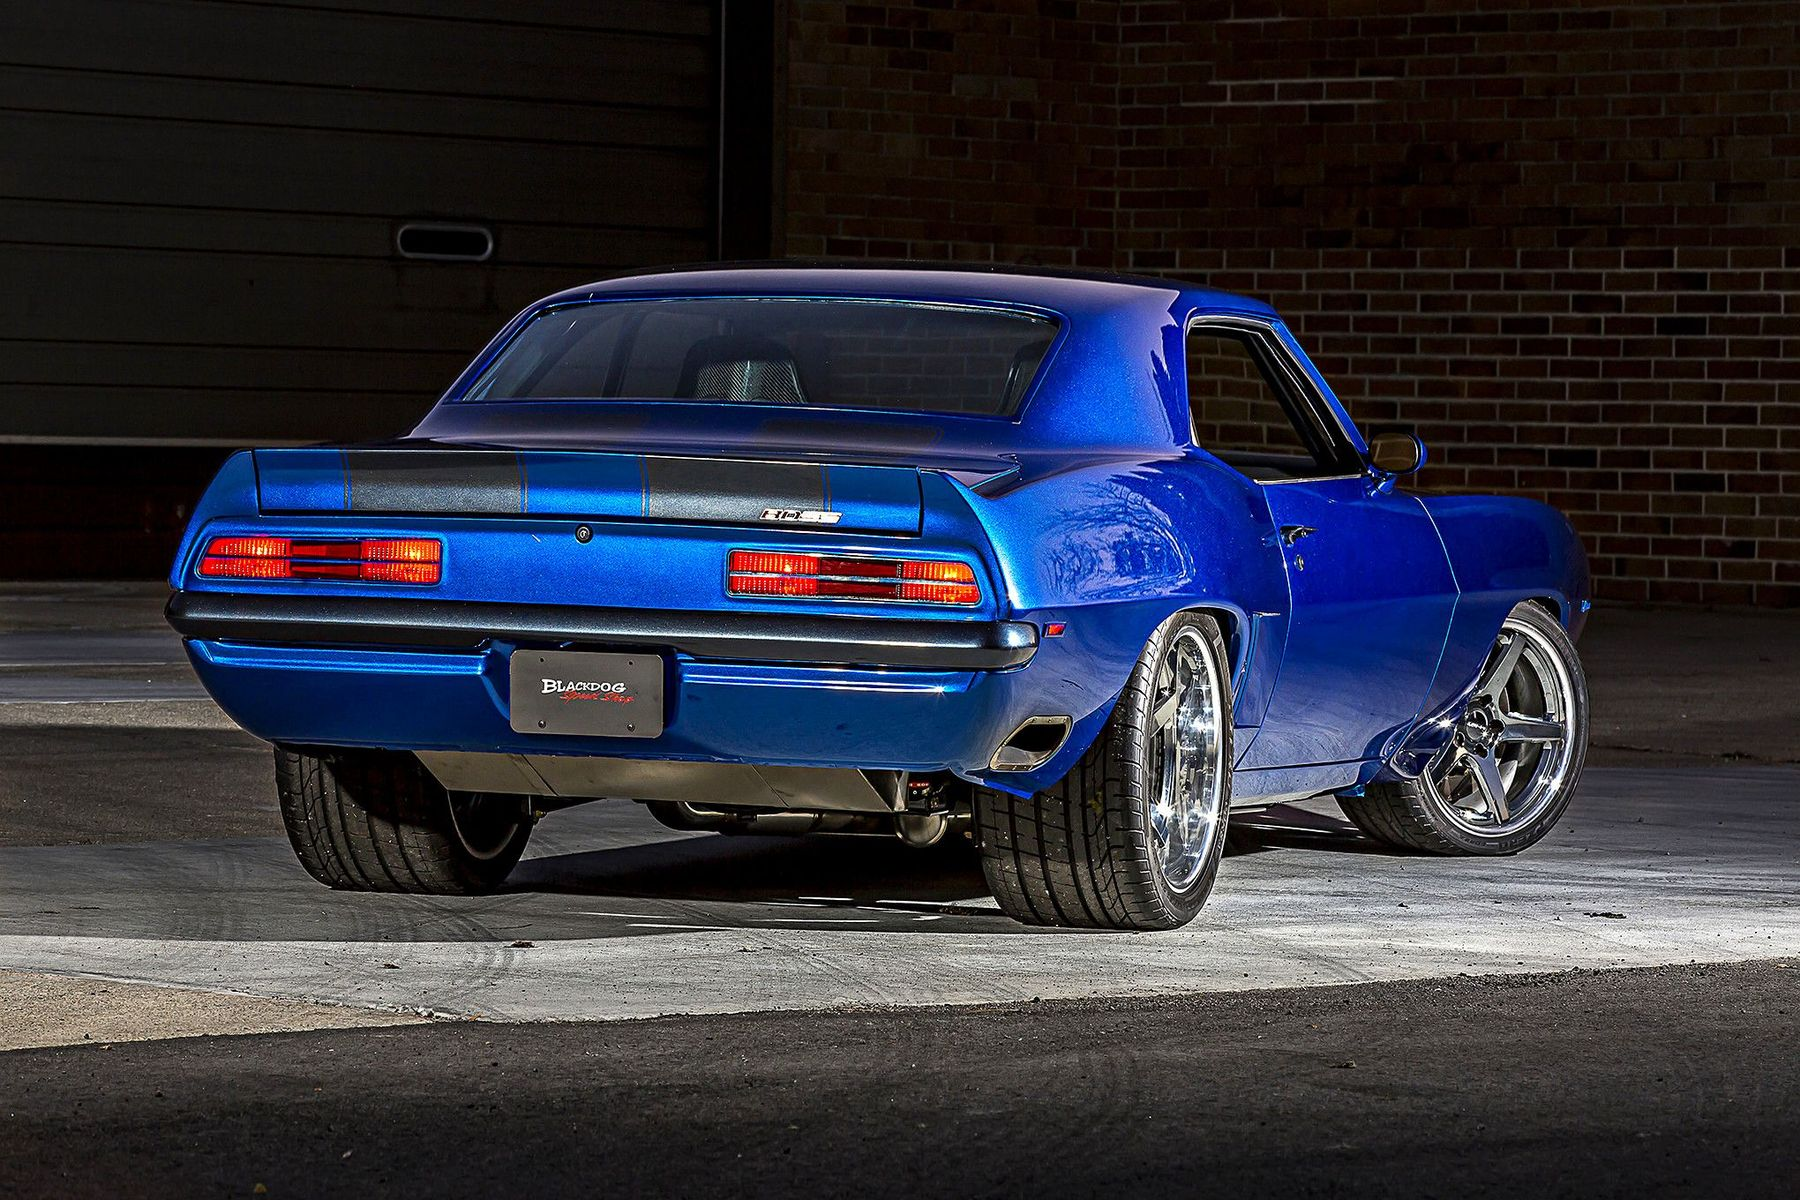 1969 Chevrolet Camaro | Blackdog Speed Shop's Pro-Touring 1969 Camaro on Forgeline CF3C Concave Wheels